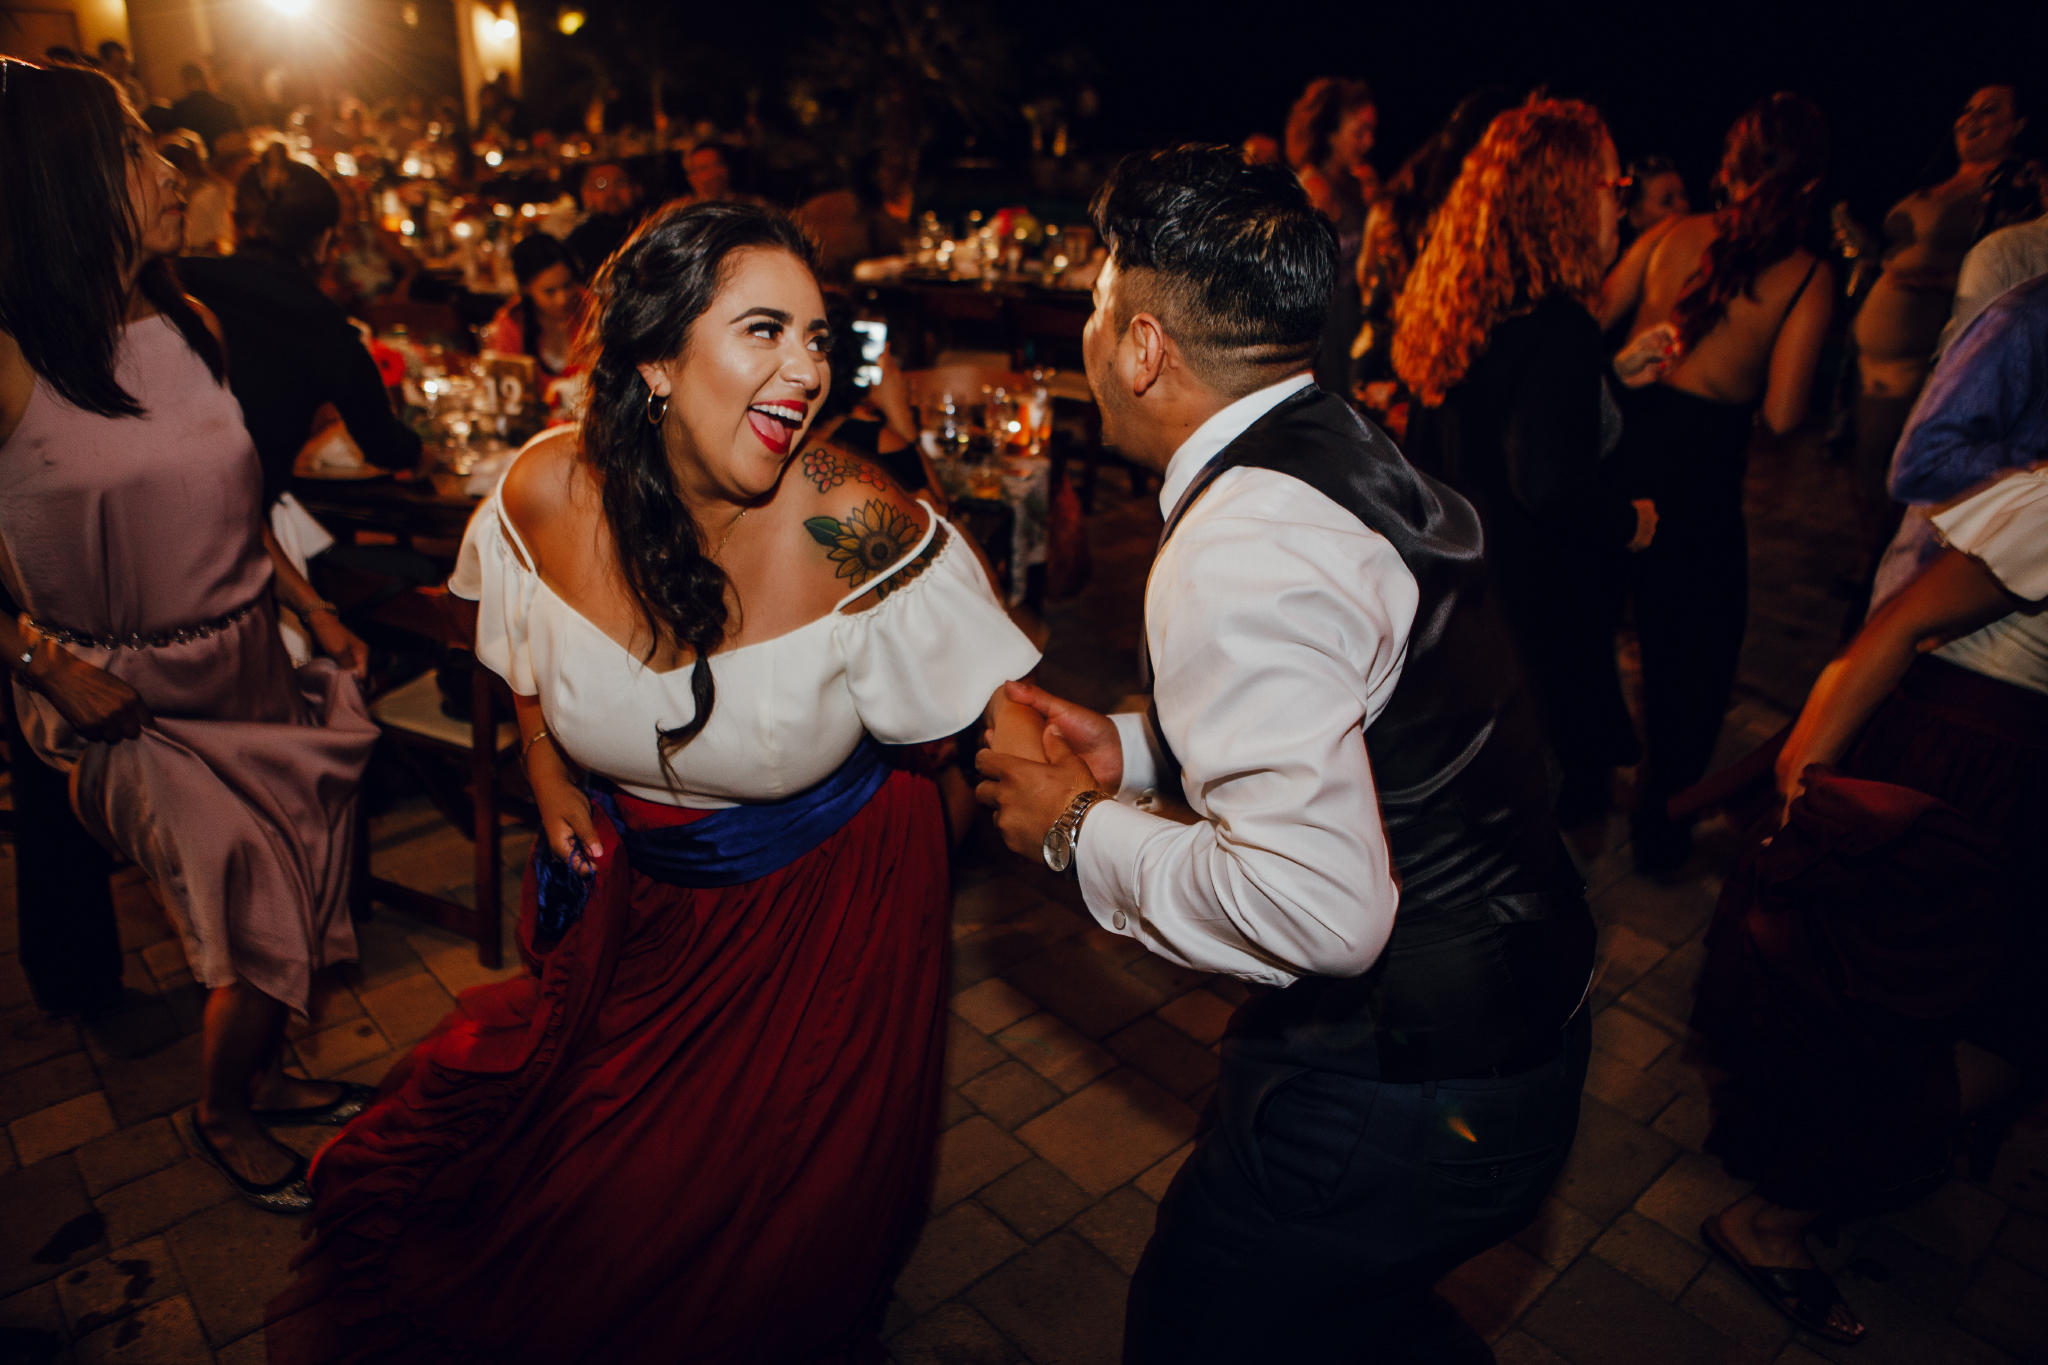 San Diego Wedding Photographer | bridesmaid dancing with her partner